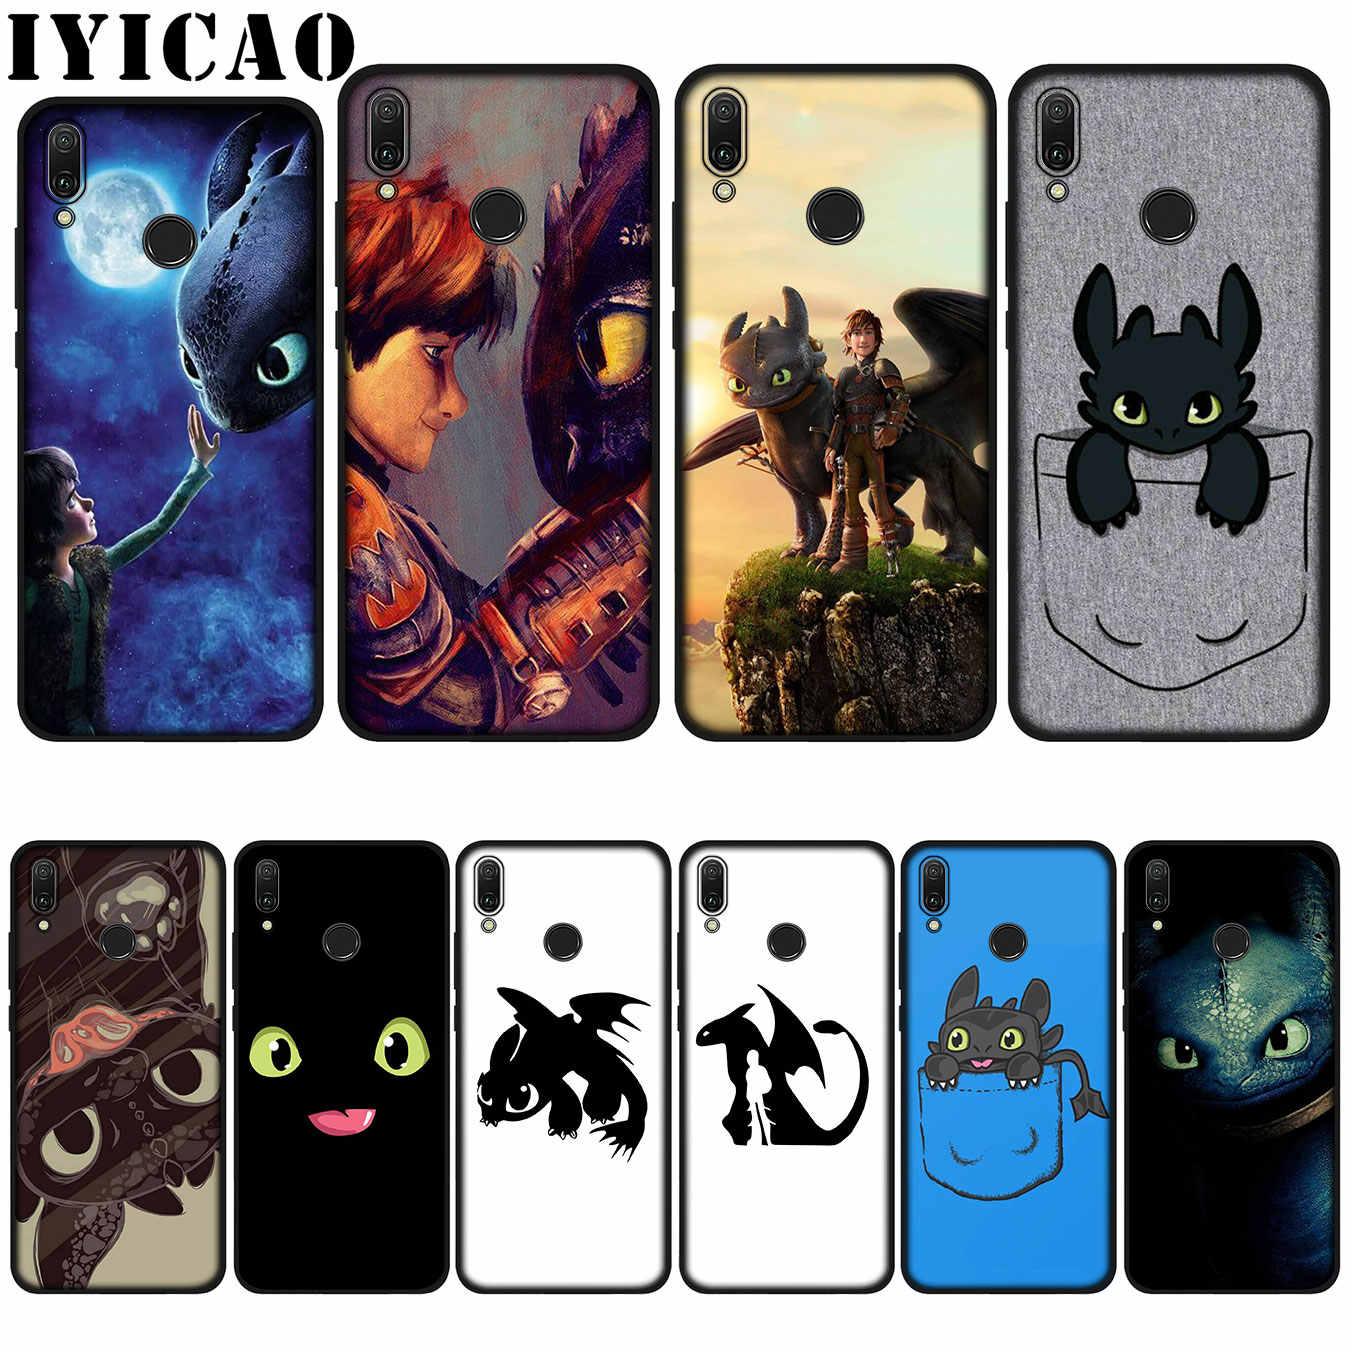 IYICAO Senza Denti Train Your Dragon Custodia Morbida per Huawei P20 Pro P10 P8 P9 P30 Lite Mini 2017 P di Smart 2019 Copertura